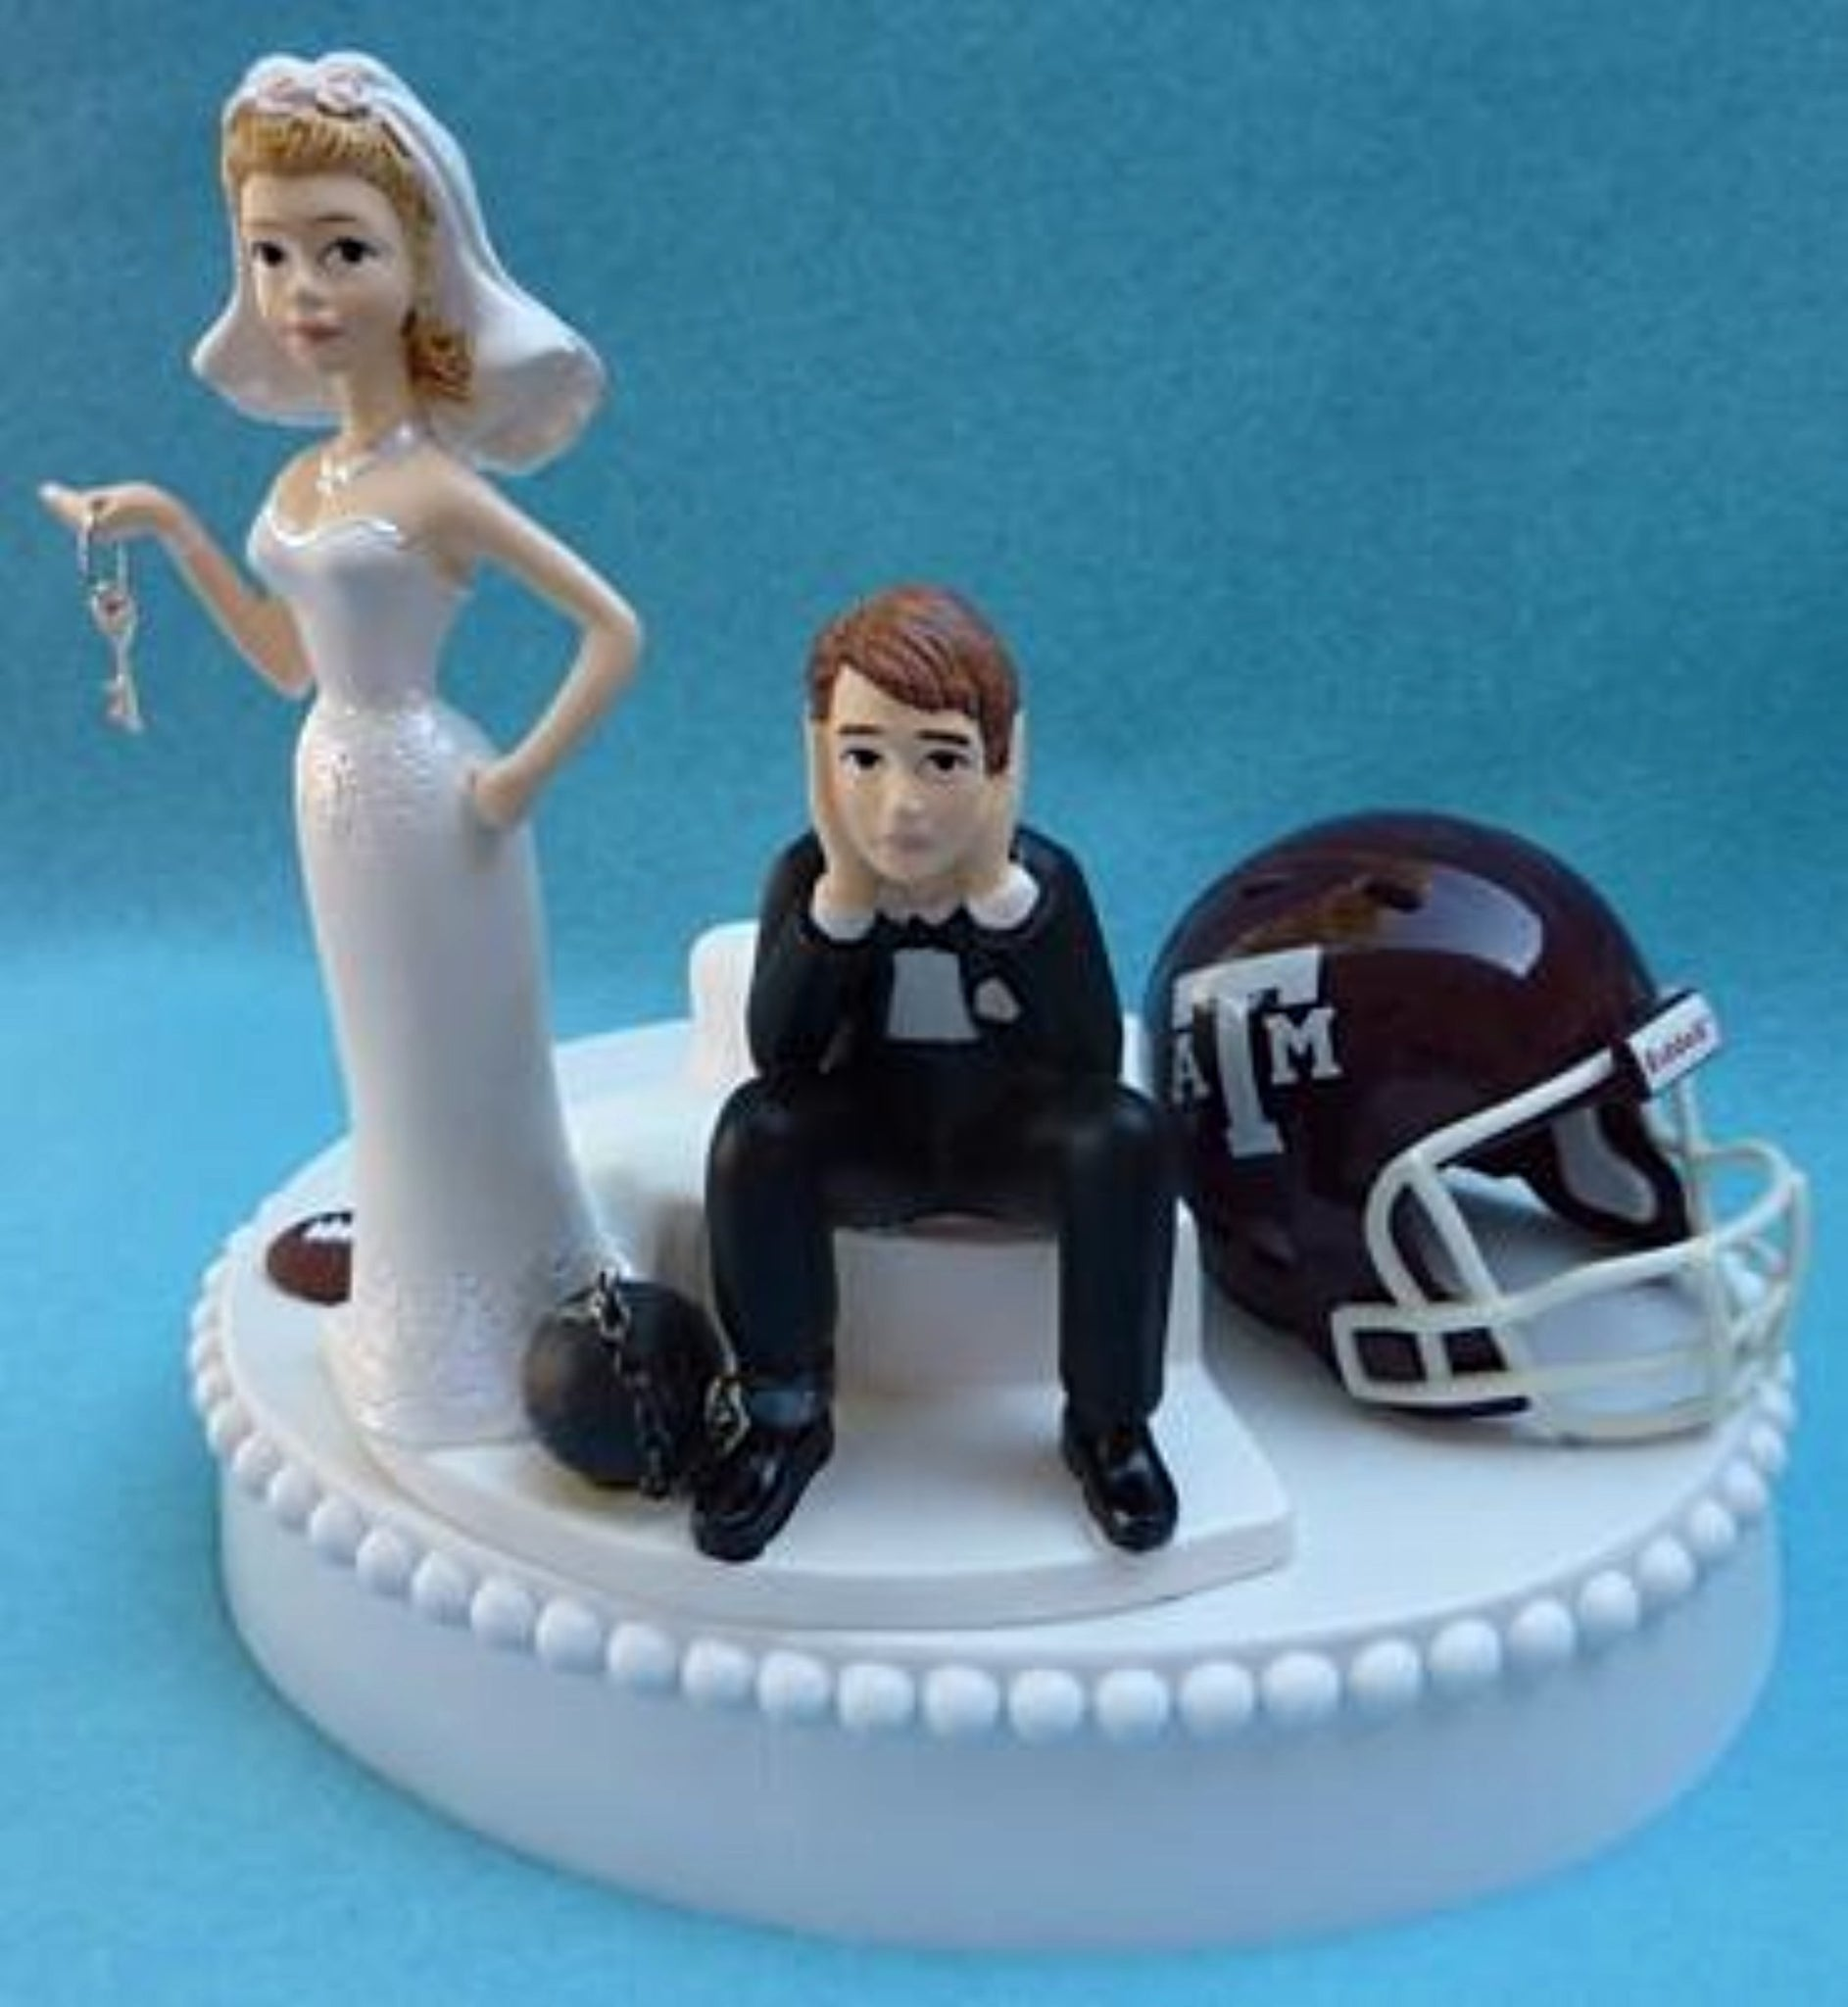 Texas A&M wedding cake topper University Aggies football funny bride sad groom ball chain key humorous Fun Wedding Things